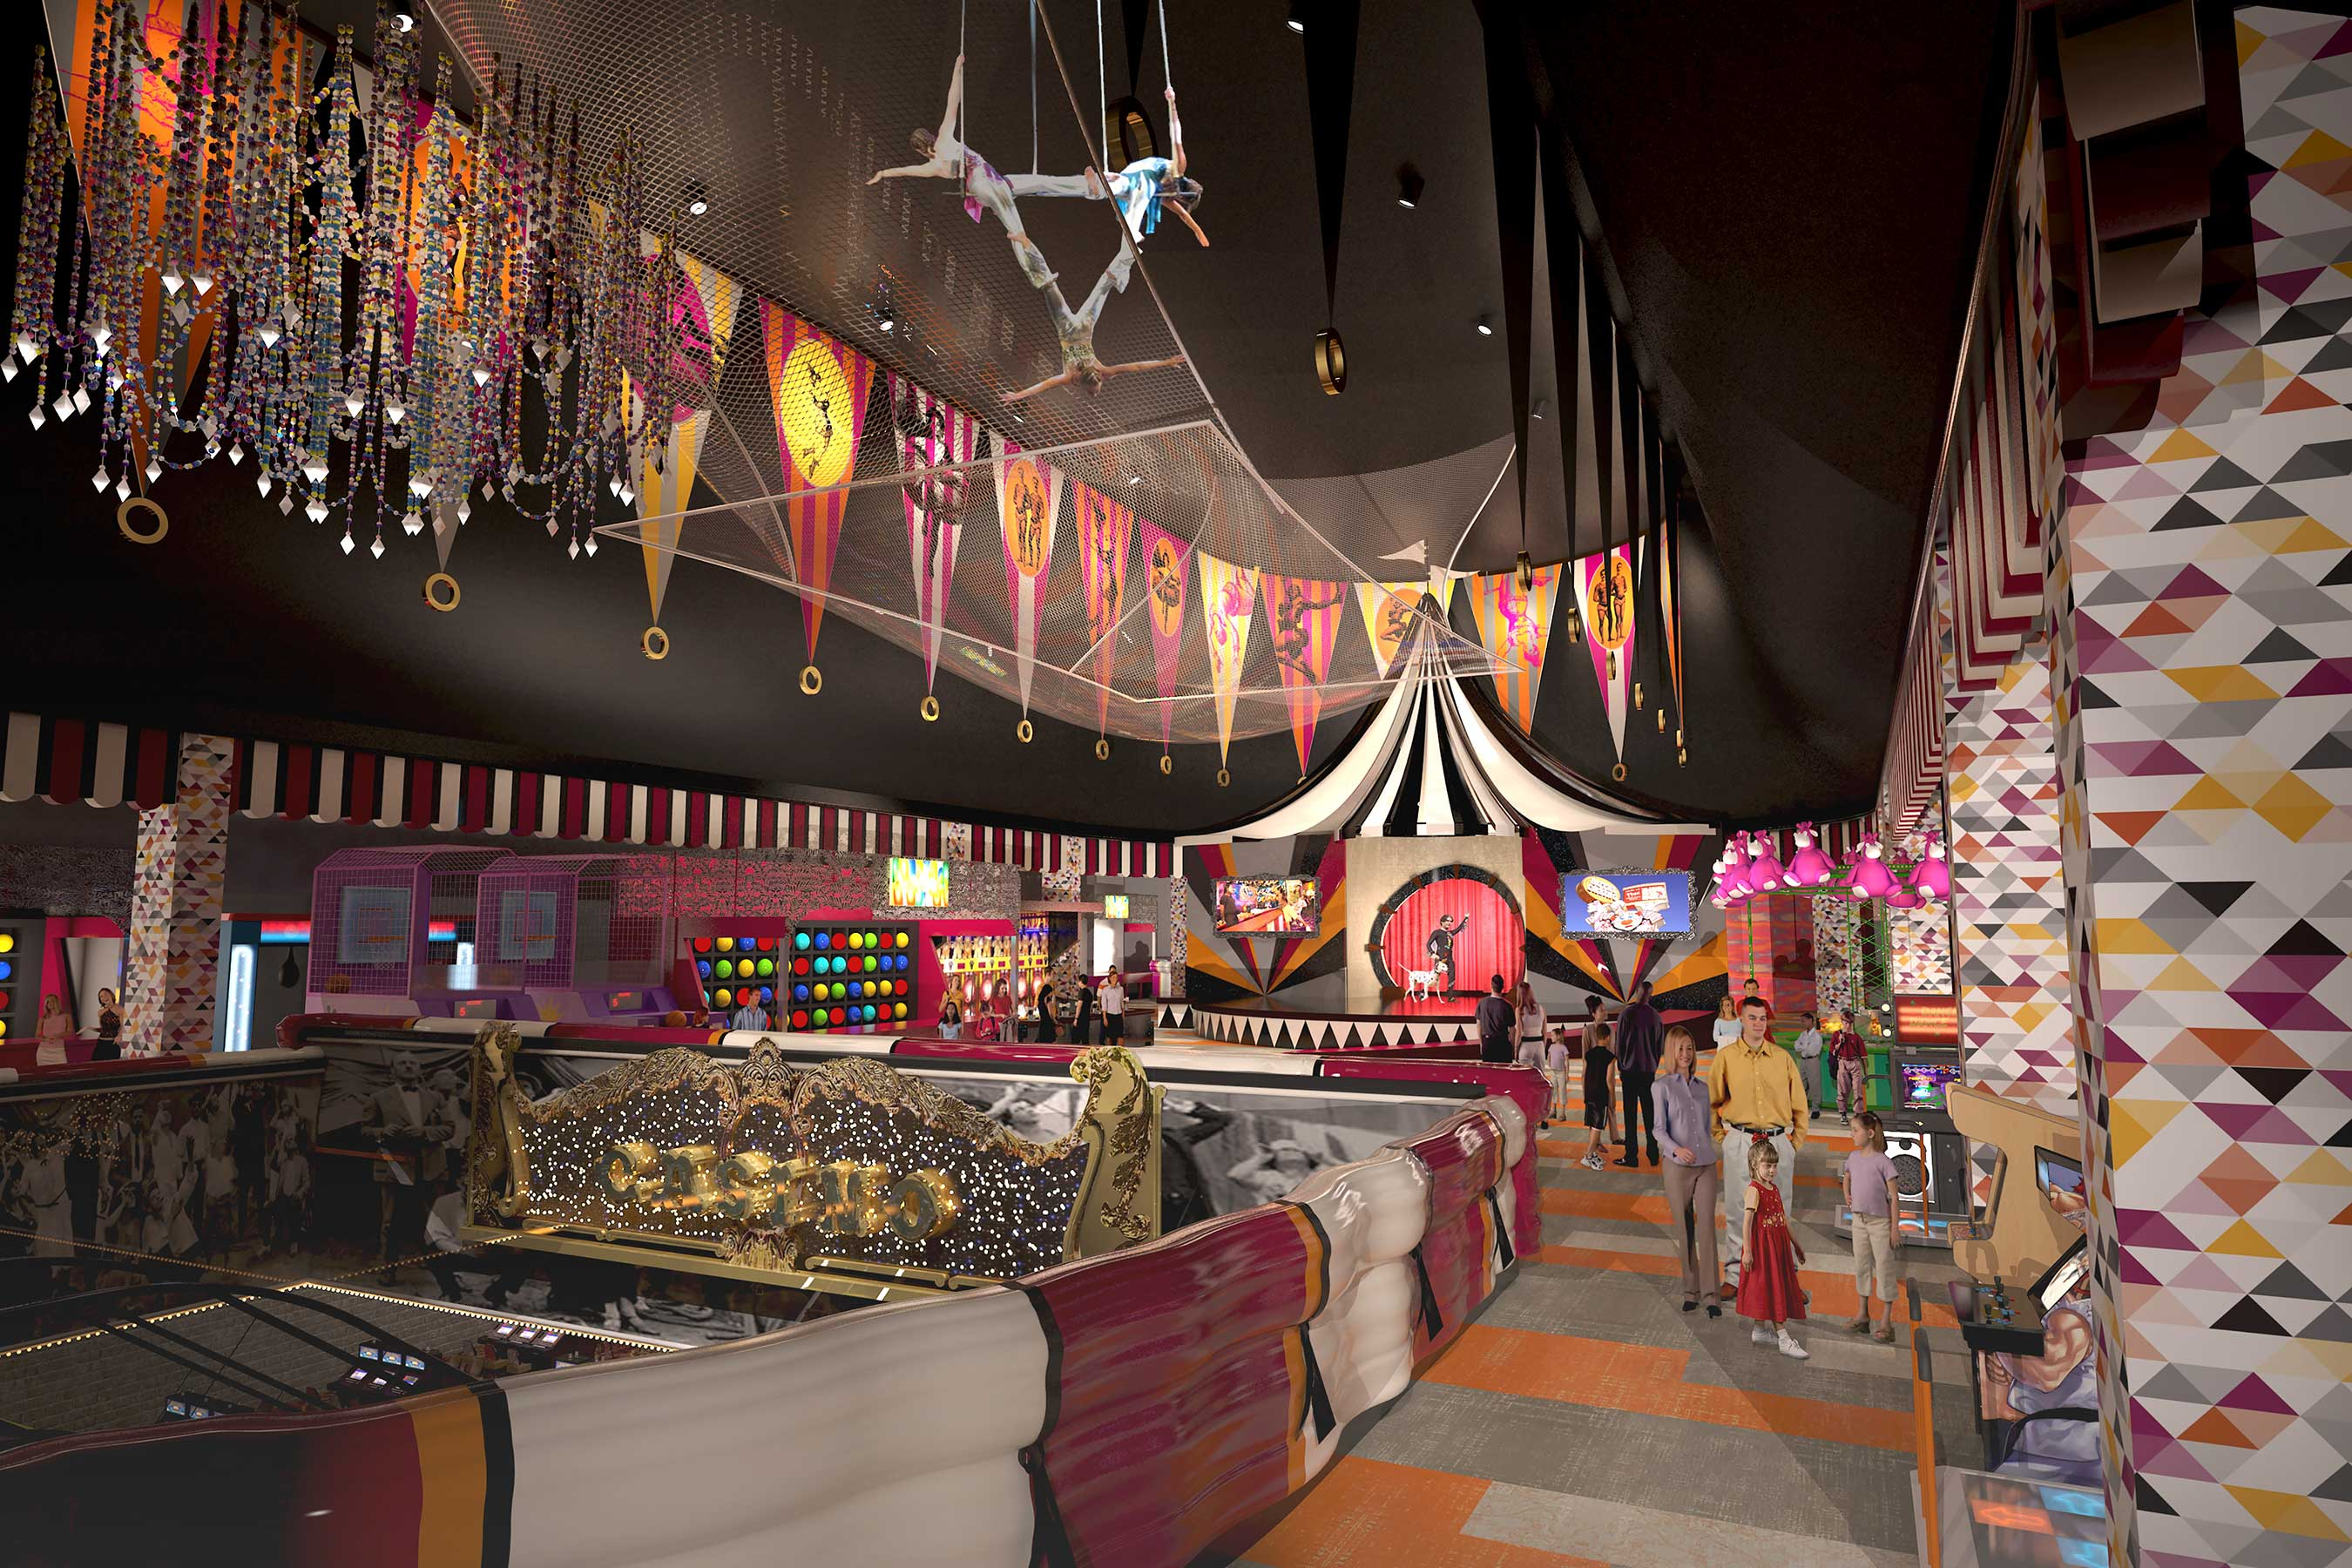 Fun for adults and kids alike, the midway will be reinvented, transformed from a traditional American circus vibe to a more whimsical European feel.